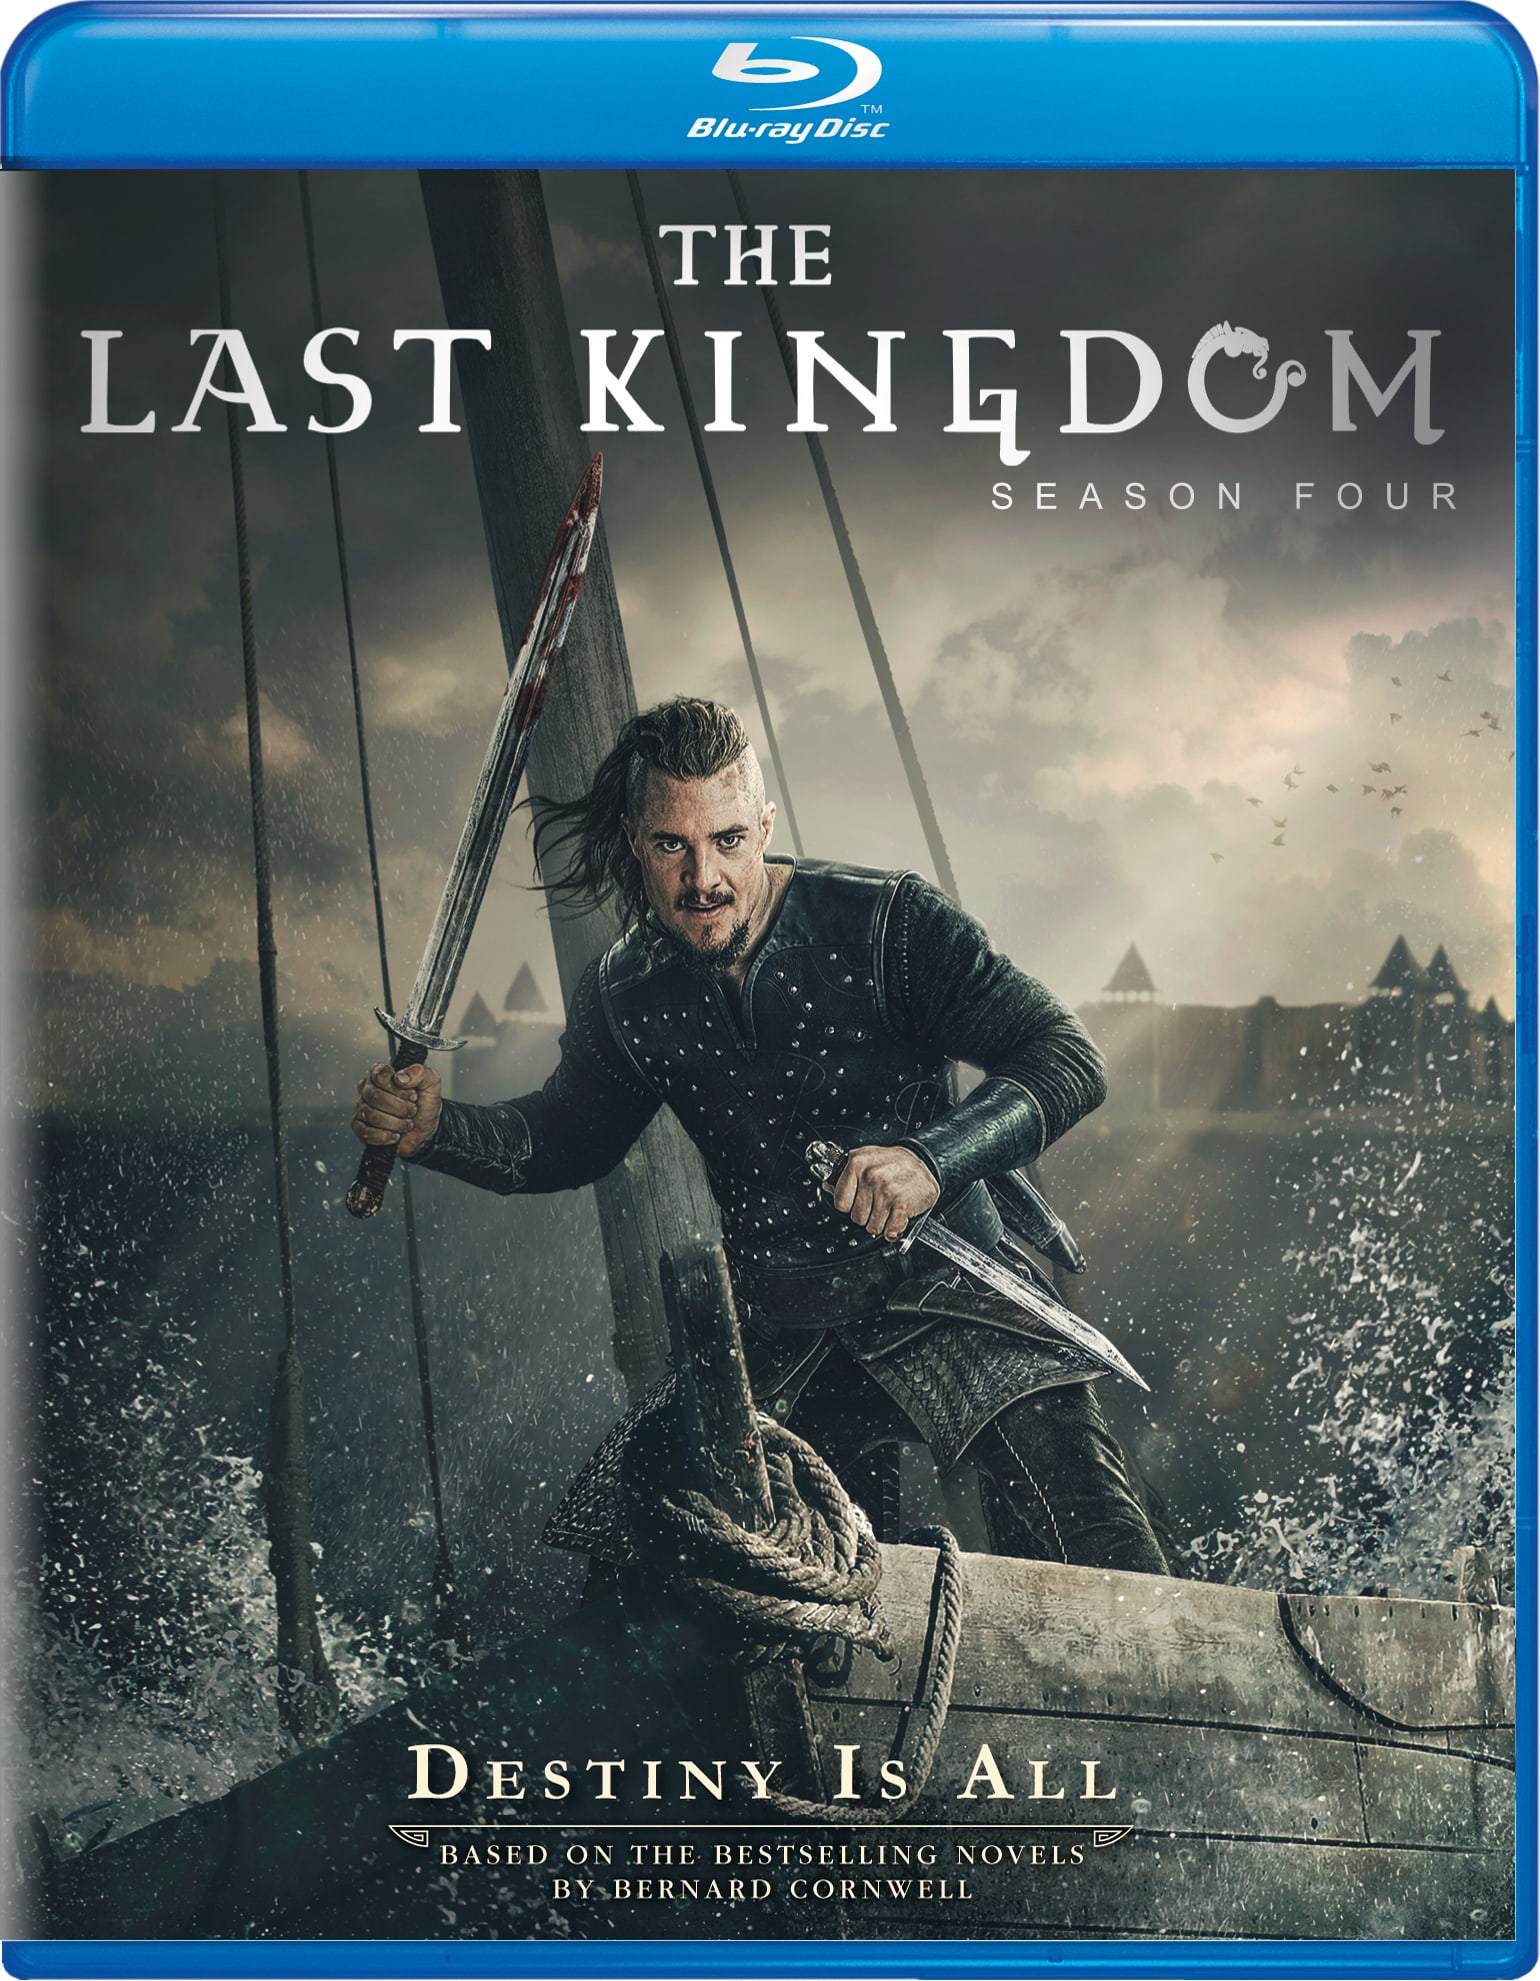 The Last Kingdom: Season Four [Blu-ray]